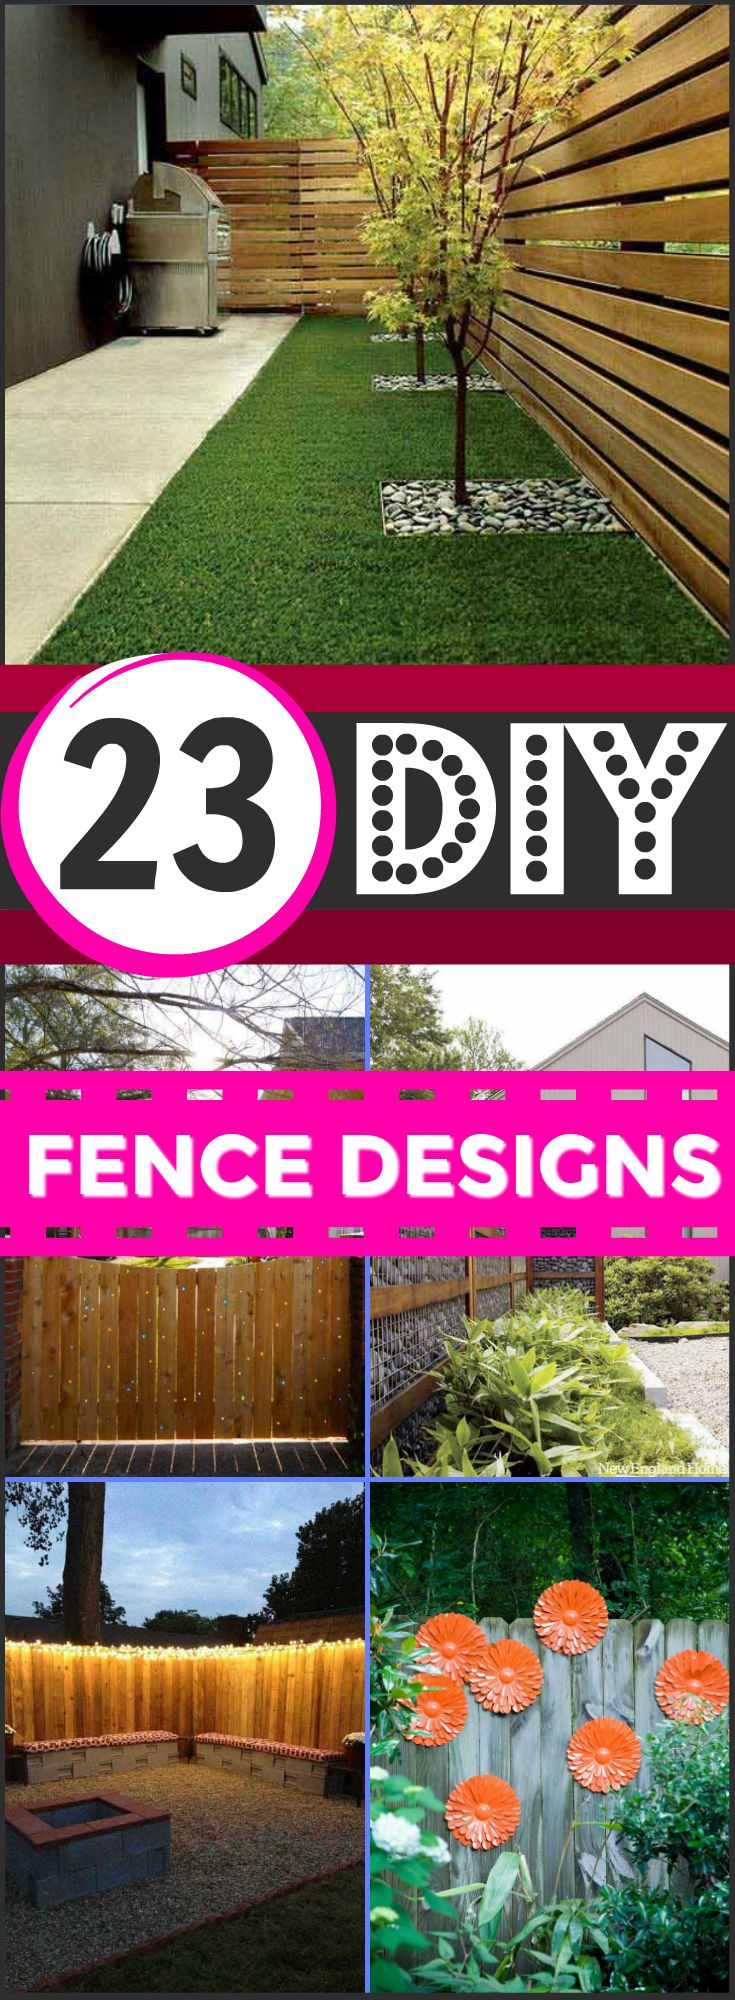 best 25 fence design ideas on pinterest fencing privacy wall outdoor and backyard fences. Black Bedroom Furniture Sets. Home Design Ideas